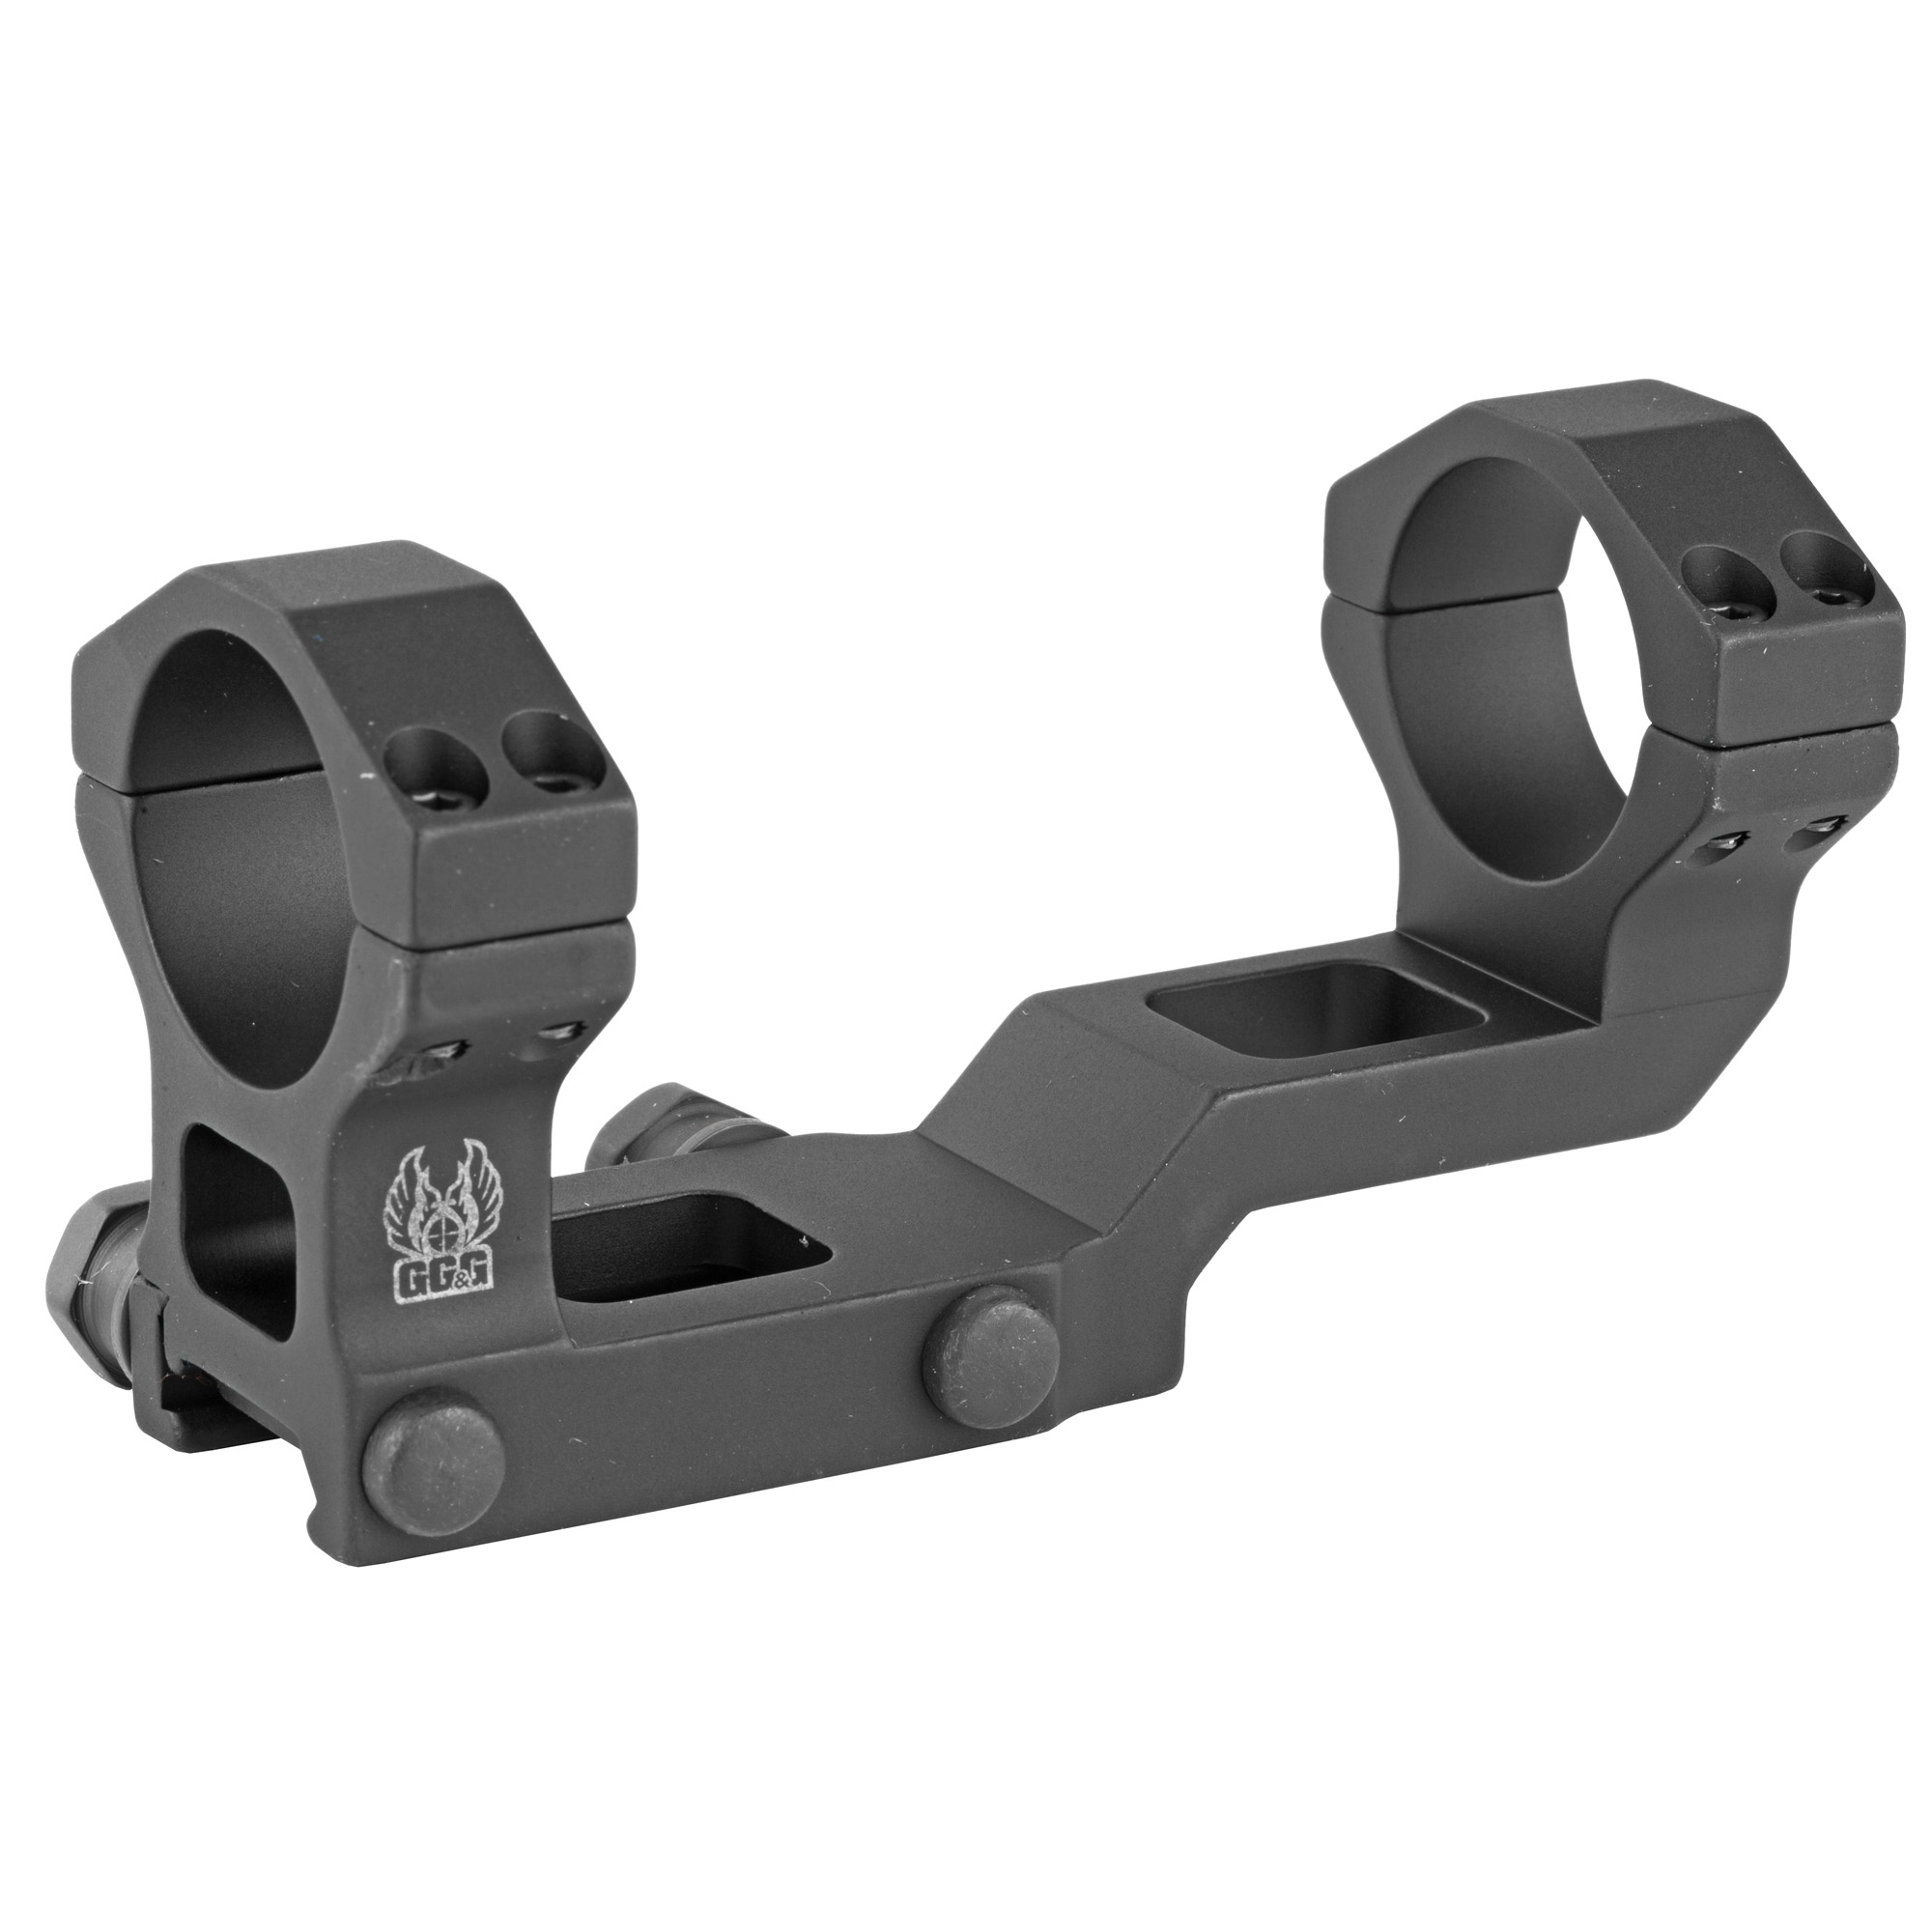 """The Special Purpose Rifle (SPR) has gained in popularity with shooters in the civilian and law enforcement community. GG&G's technical advisors suggested that the scope most often used on SPR rifles is a 30mm low powered variable optic placed forward on the AR-15/M16 flattop receiver. To meet the specific optic mounting needs of the SPR shooters"""" GG&G has introduced the GG&G FLT Scope Mount with 30mm Integral Rings."""